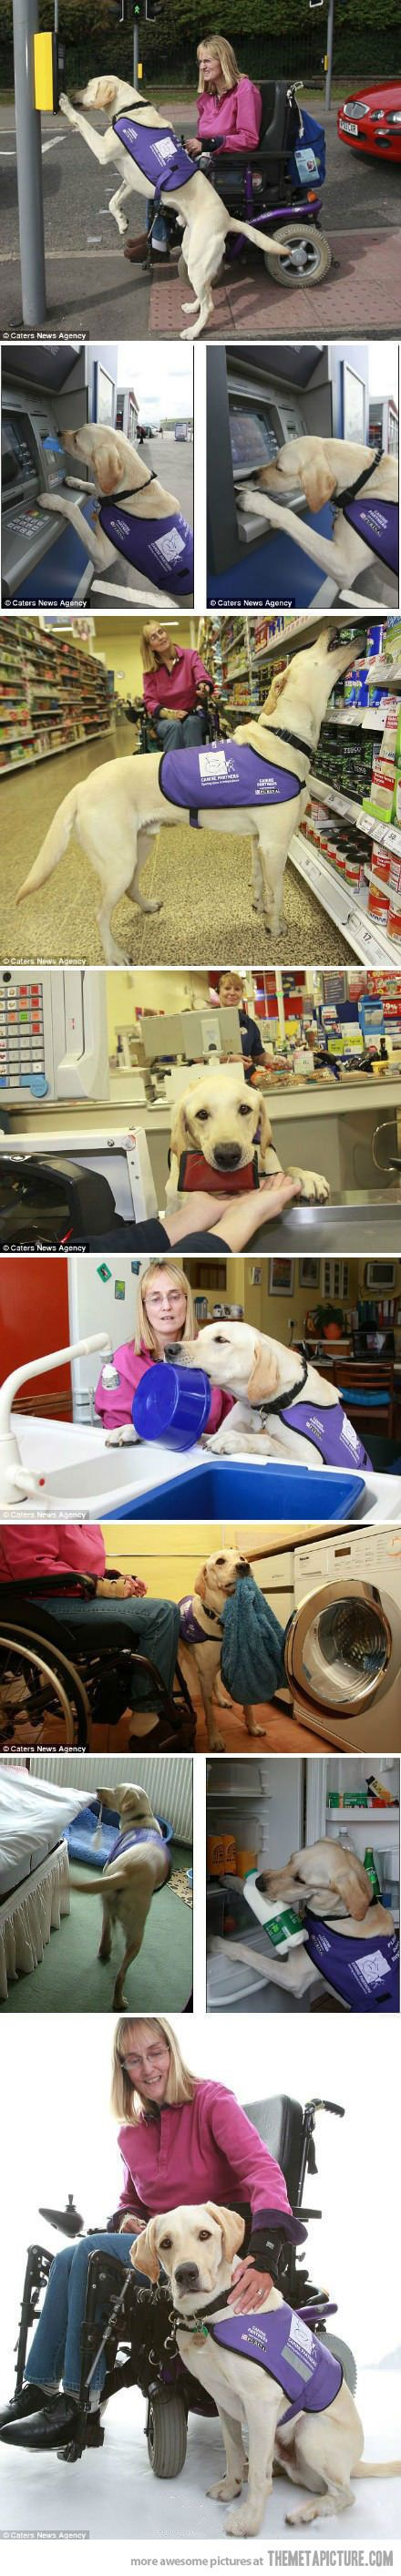 These dogs are amazing.  I am proud to have a retired assistance dog.